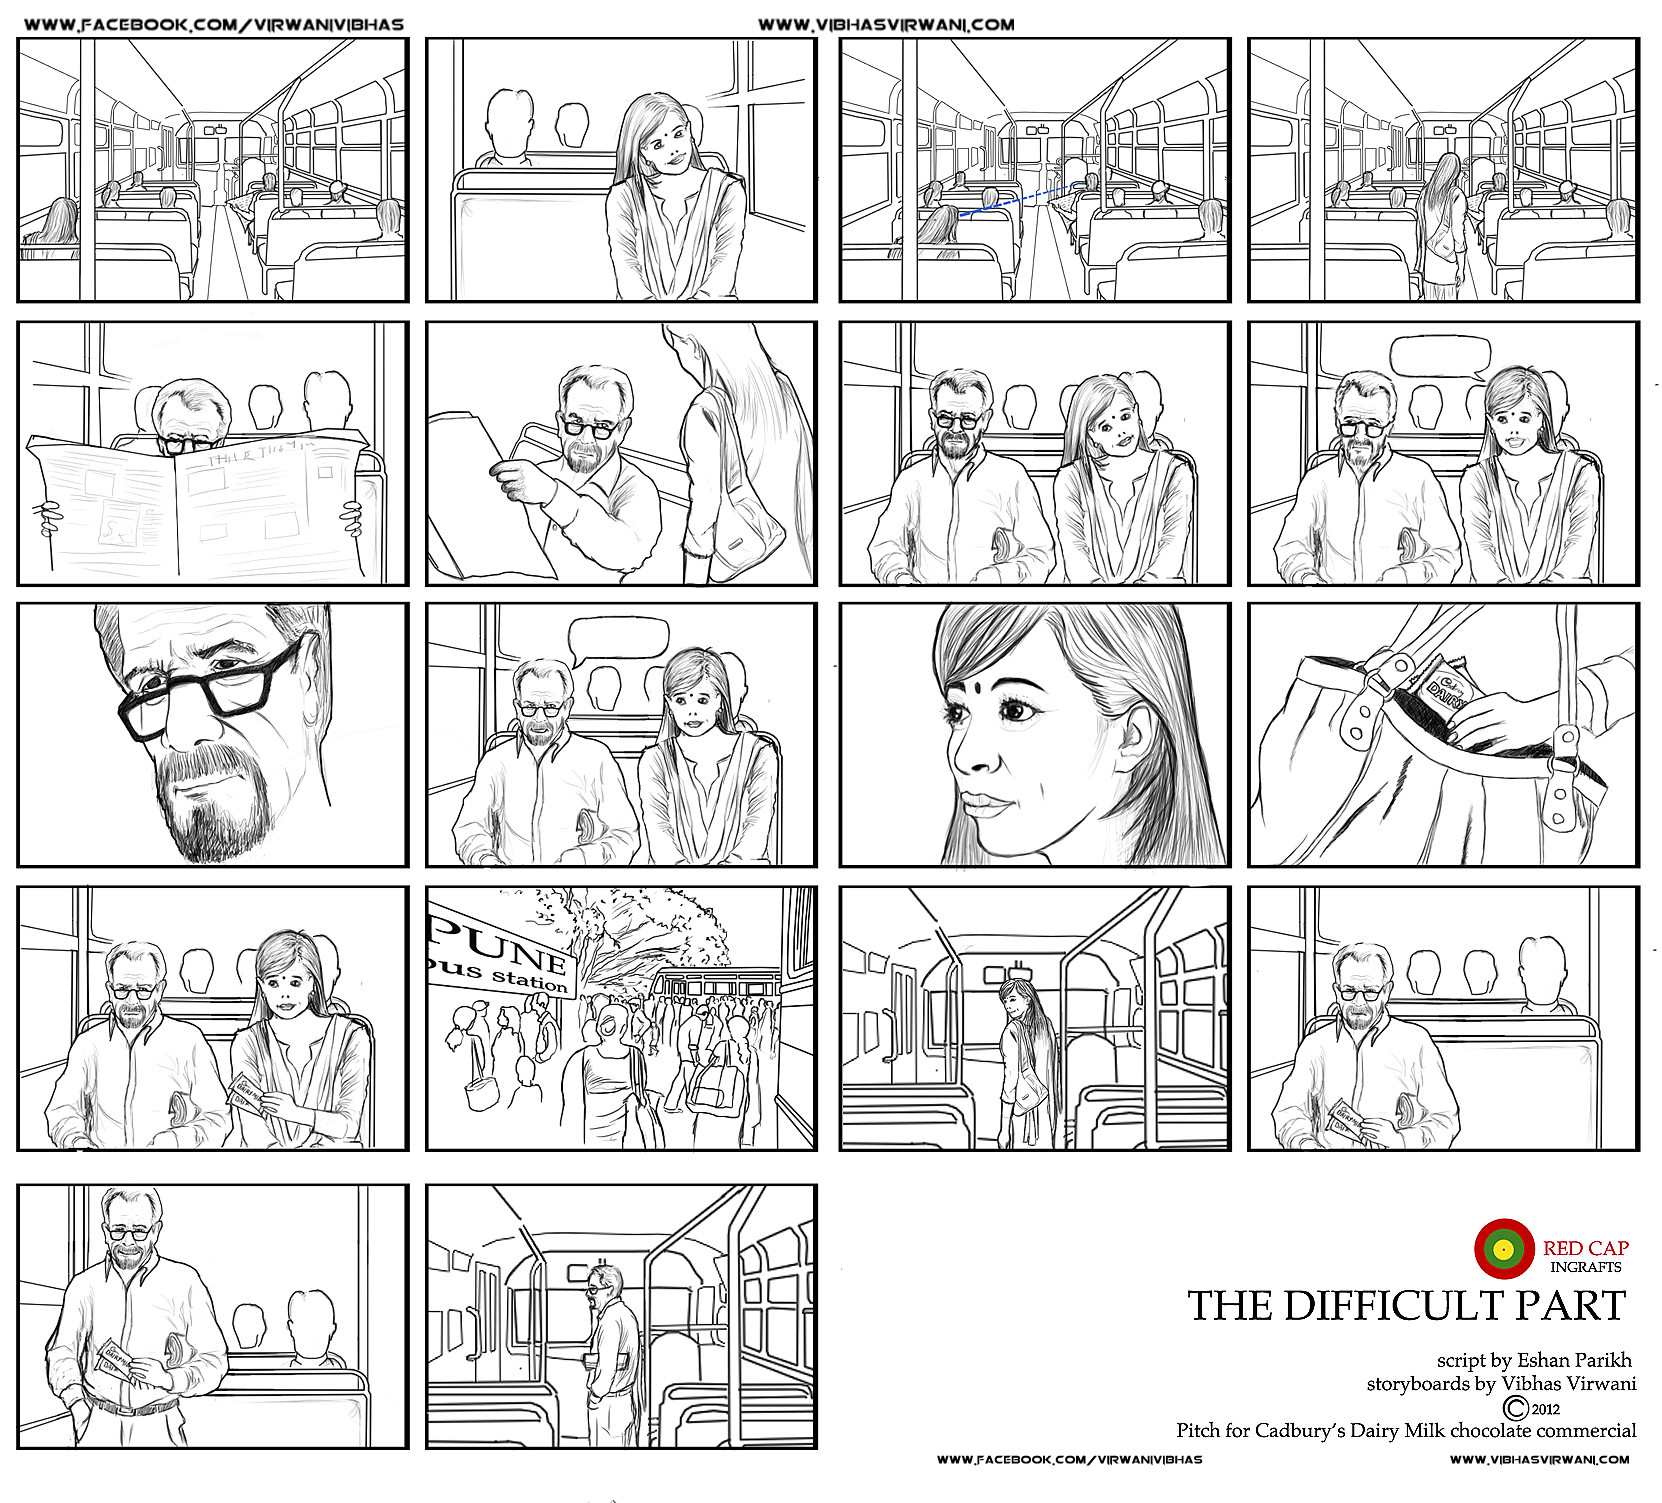 Vibhas virwani cadbury dairy milk advertising pitch storyboard by vibhas virwani